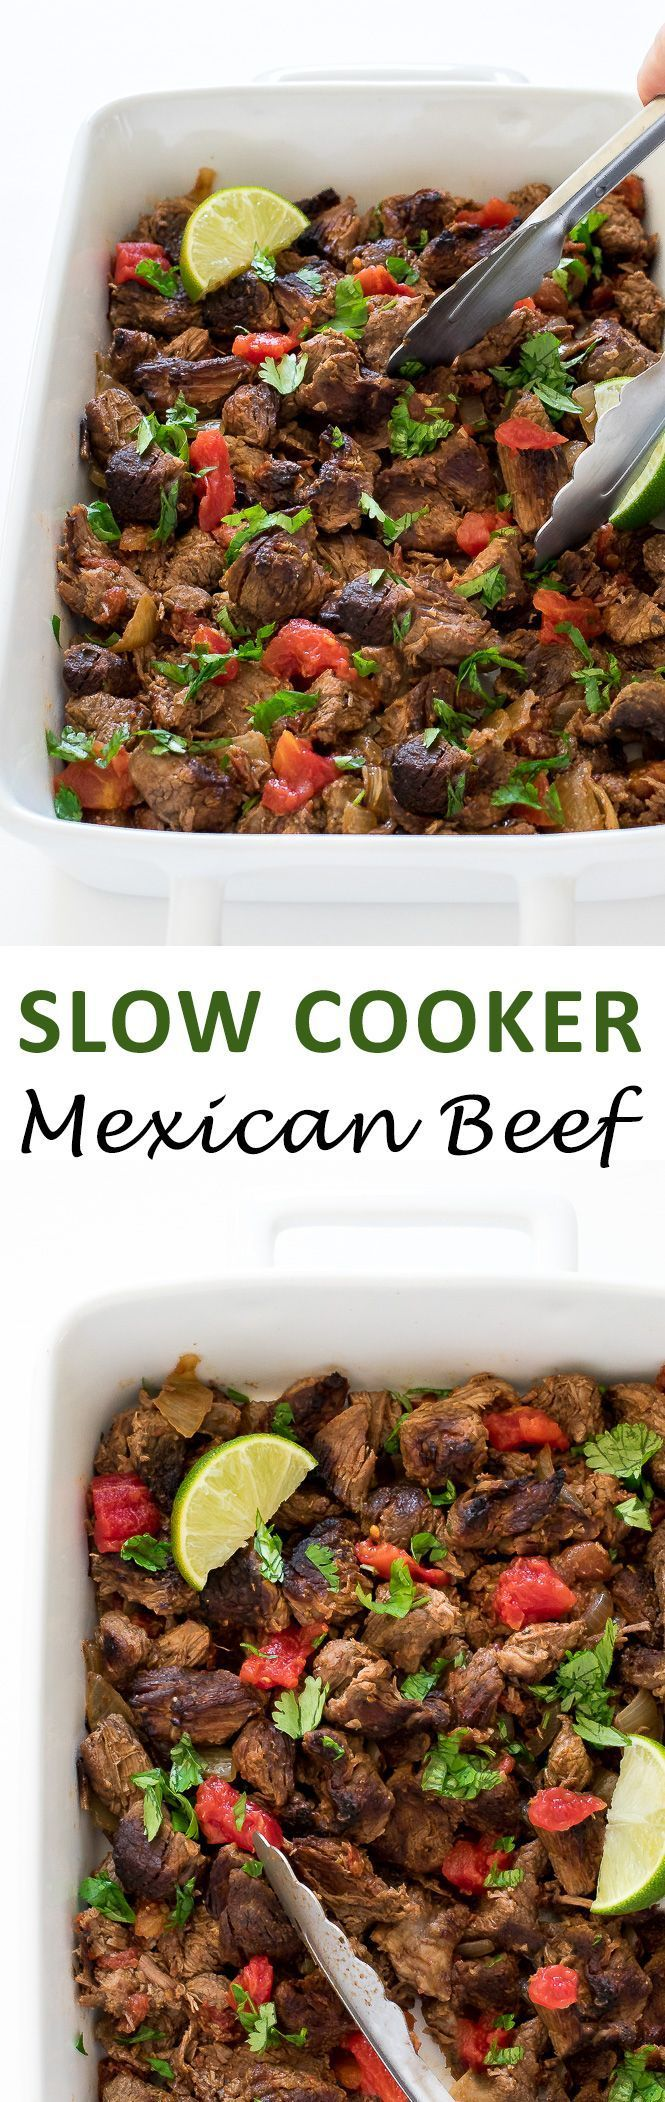 Super Easy Slow Cooker Mexican Beef. Cooked low and slow for 8 hours until fall apart tender! | chefsavvy.com #recipe #slow #cooker #mexican #beef